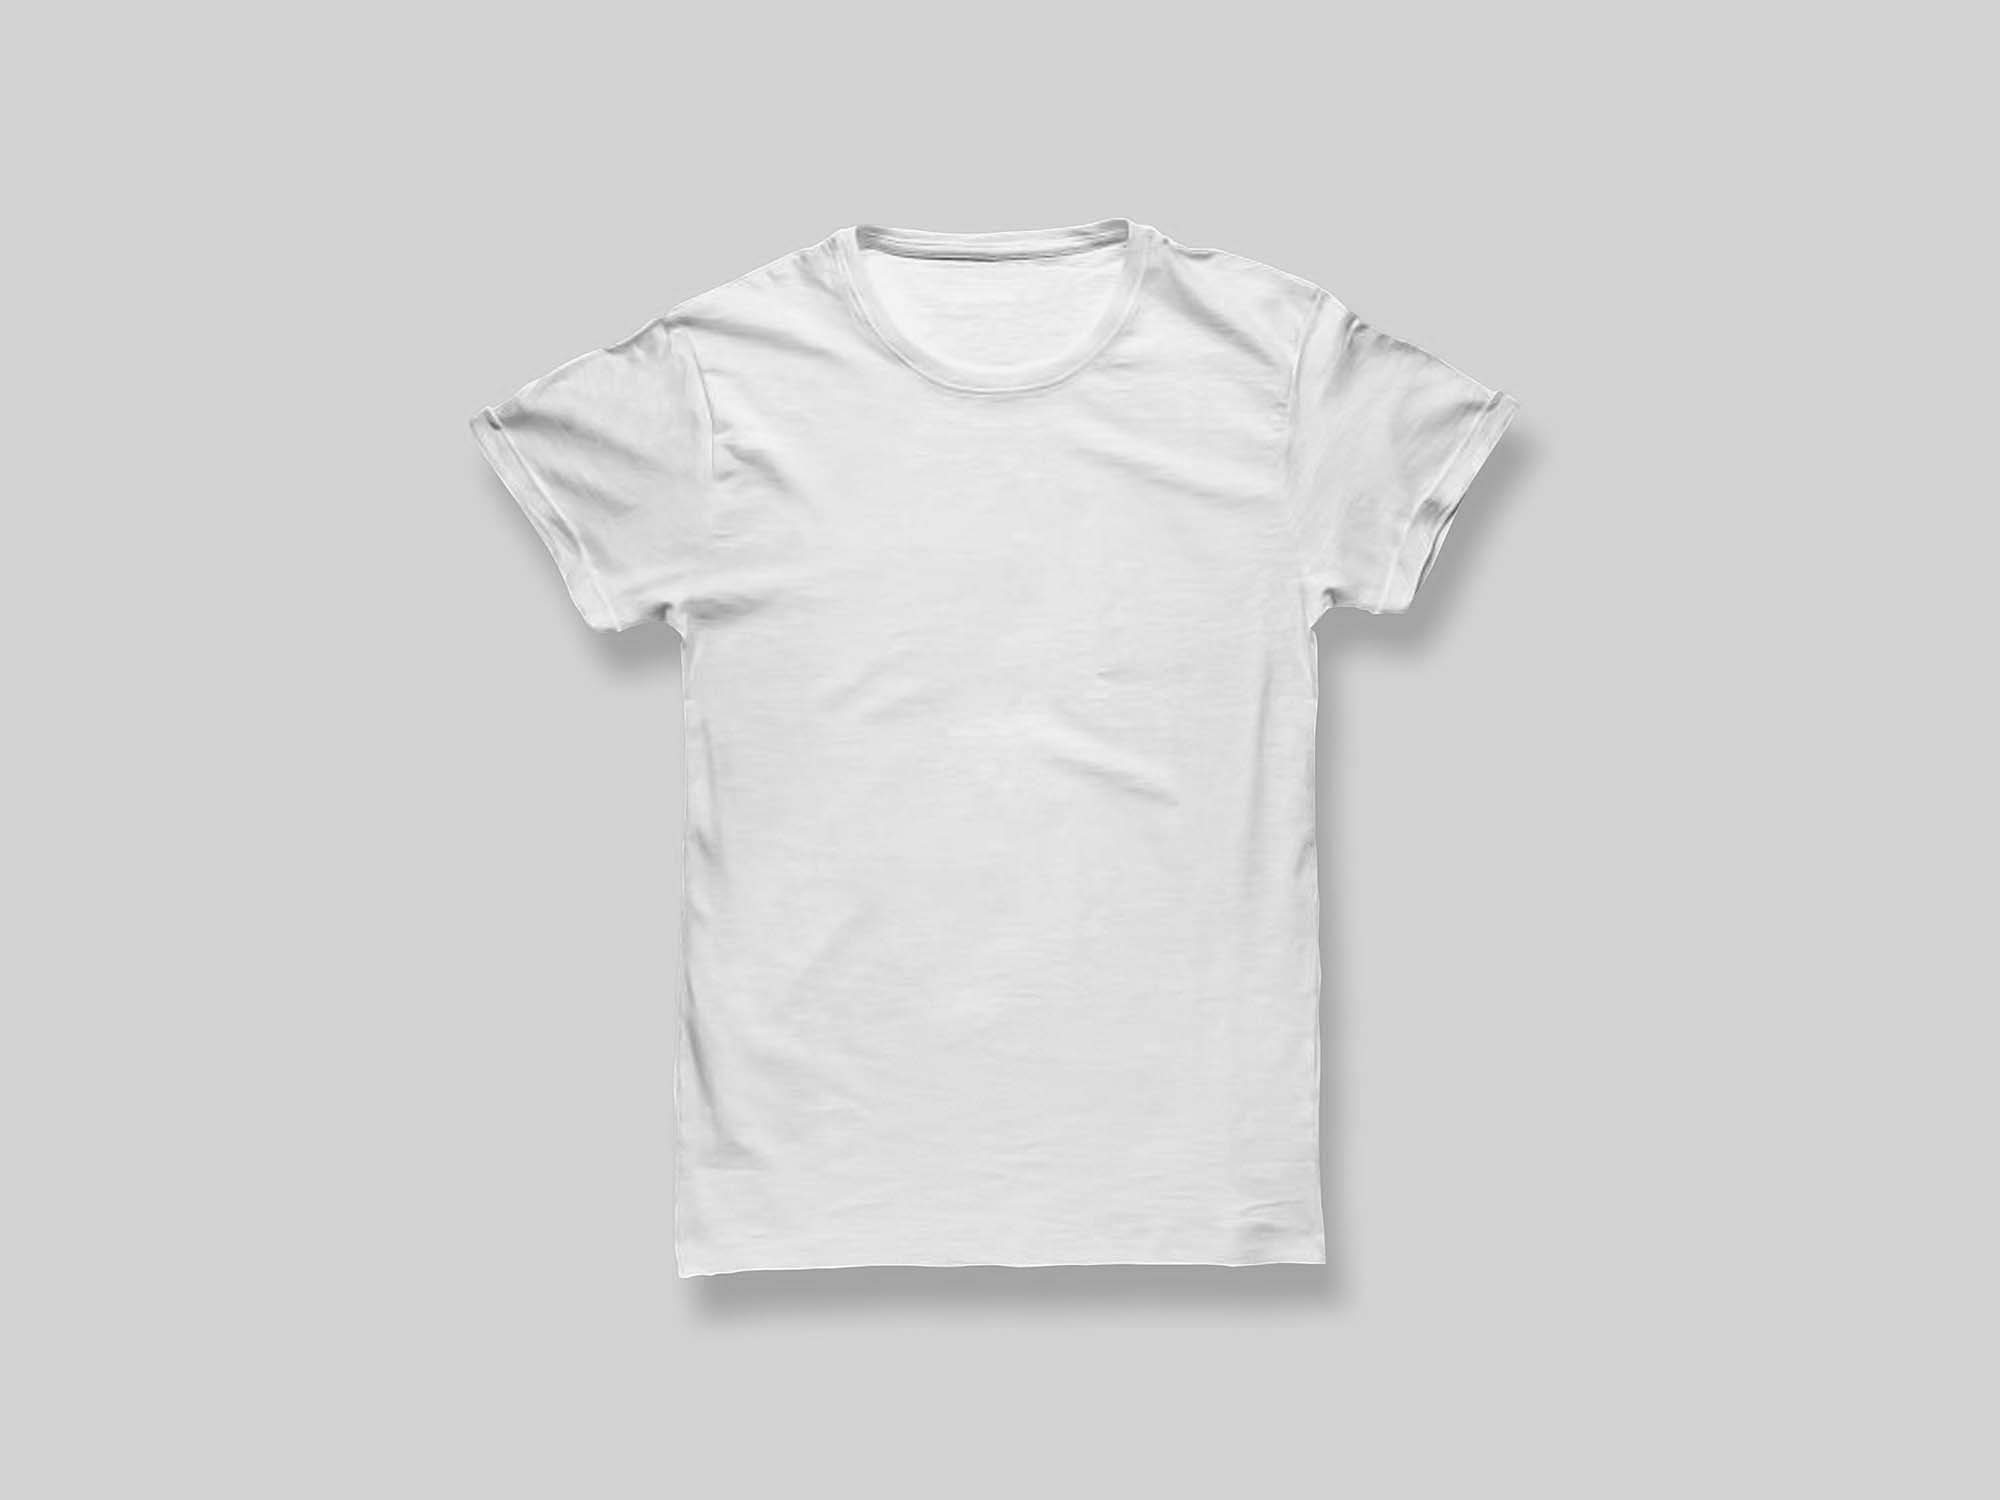 T-shirt Mockup For Men 3